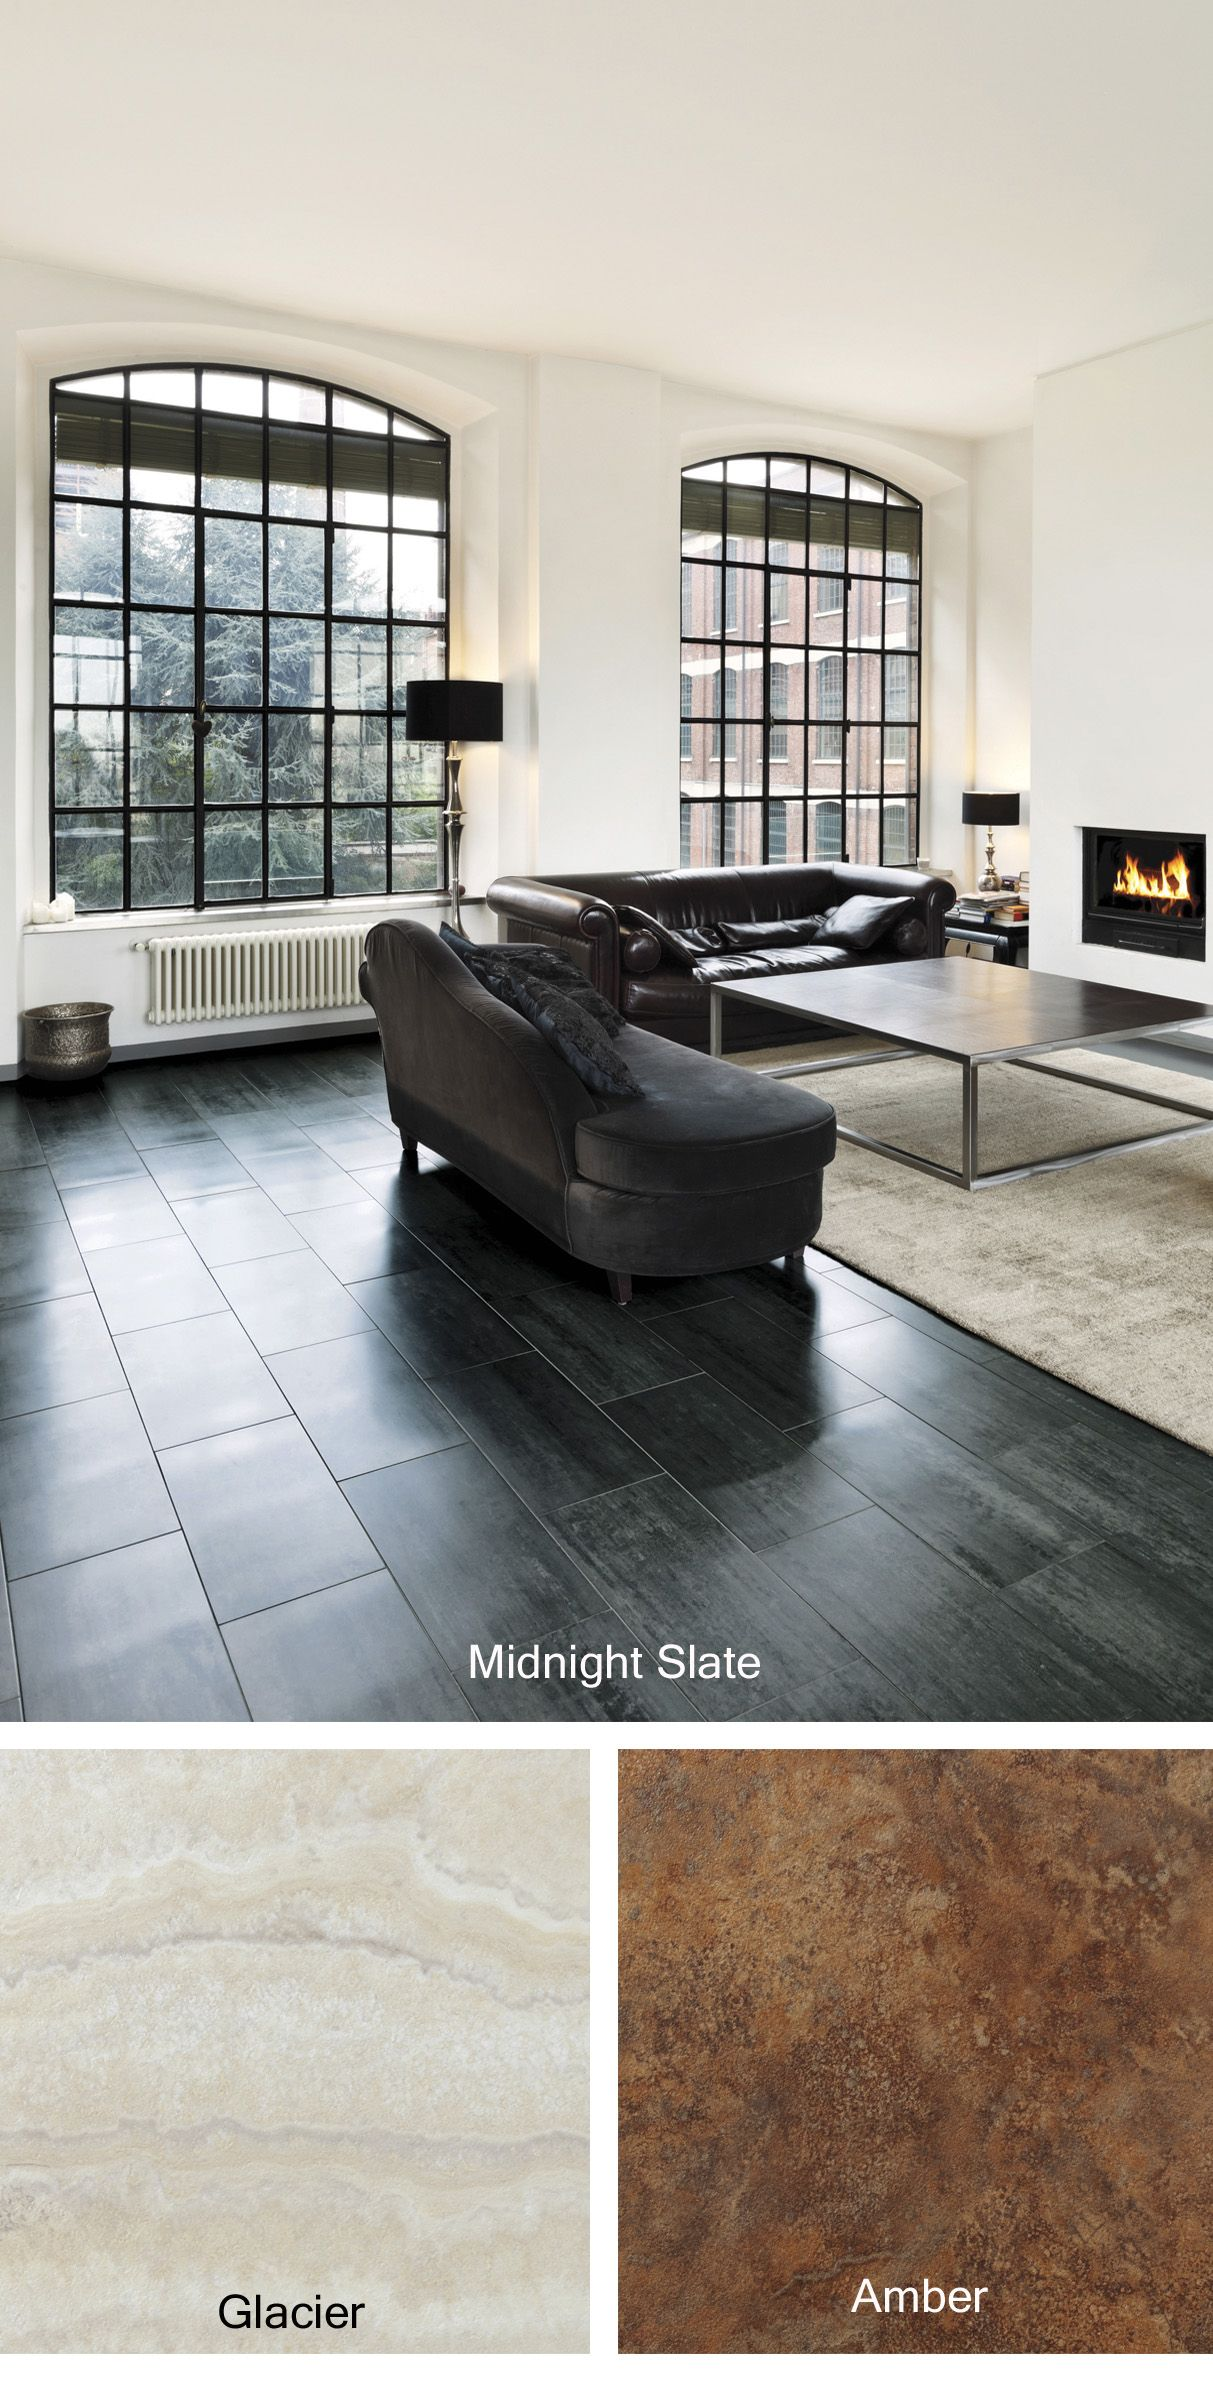 Living Room Ideas Make A Bold Statement With The Midnight Slate Sleek Black Luxury Vinyl Floor